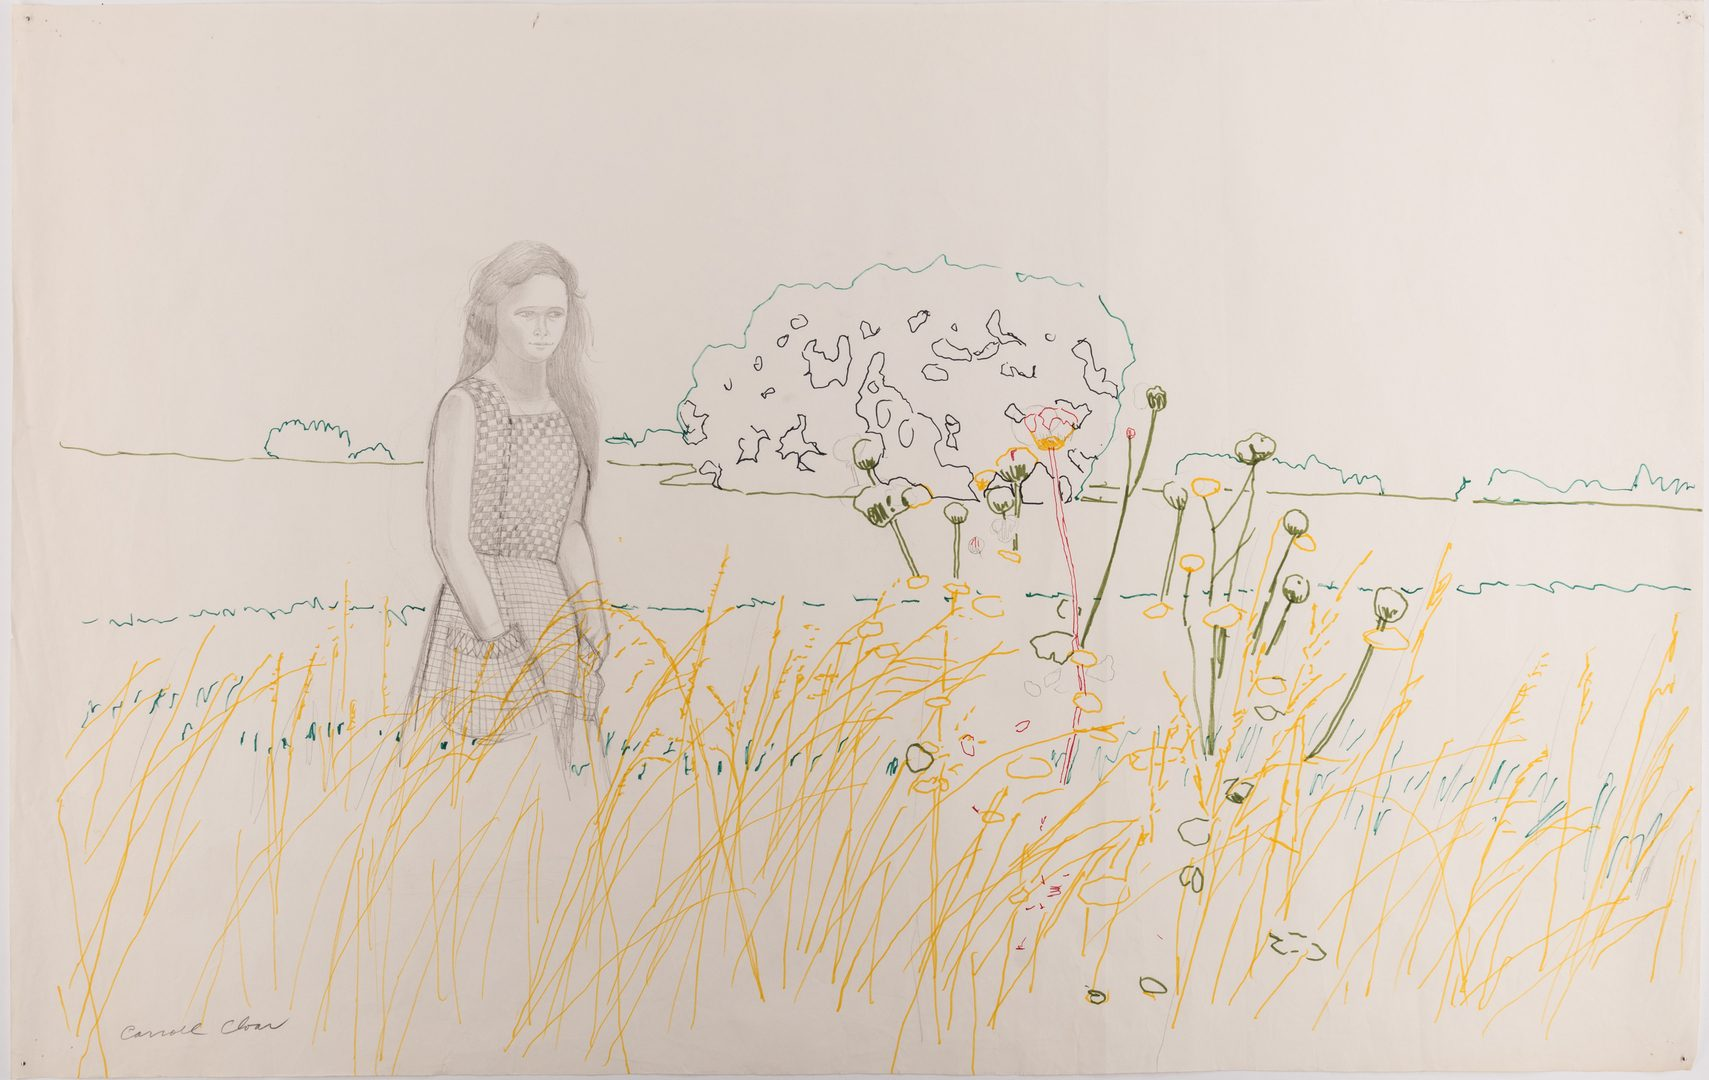 Lot 130: Carroll Cloar Drawing, Woman in Field